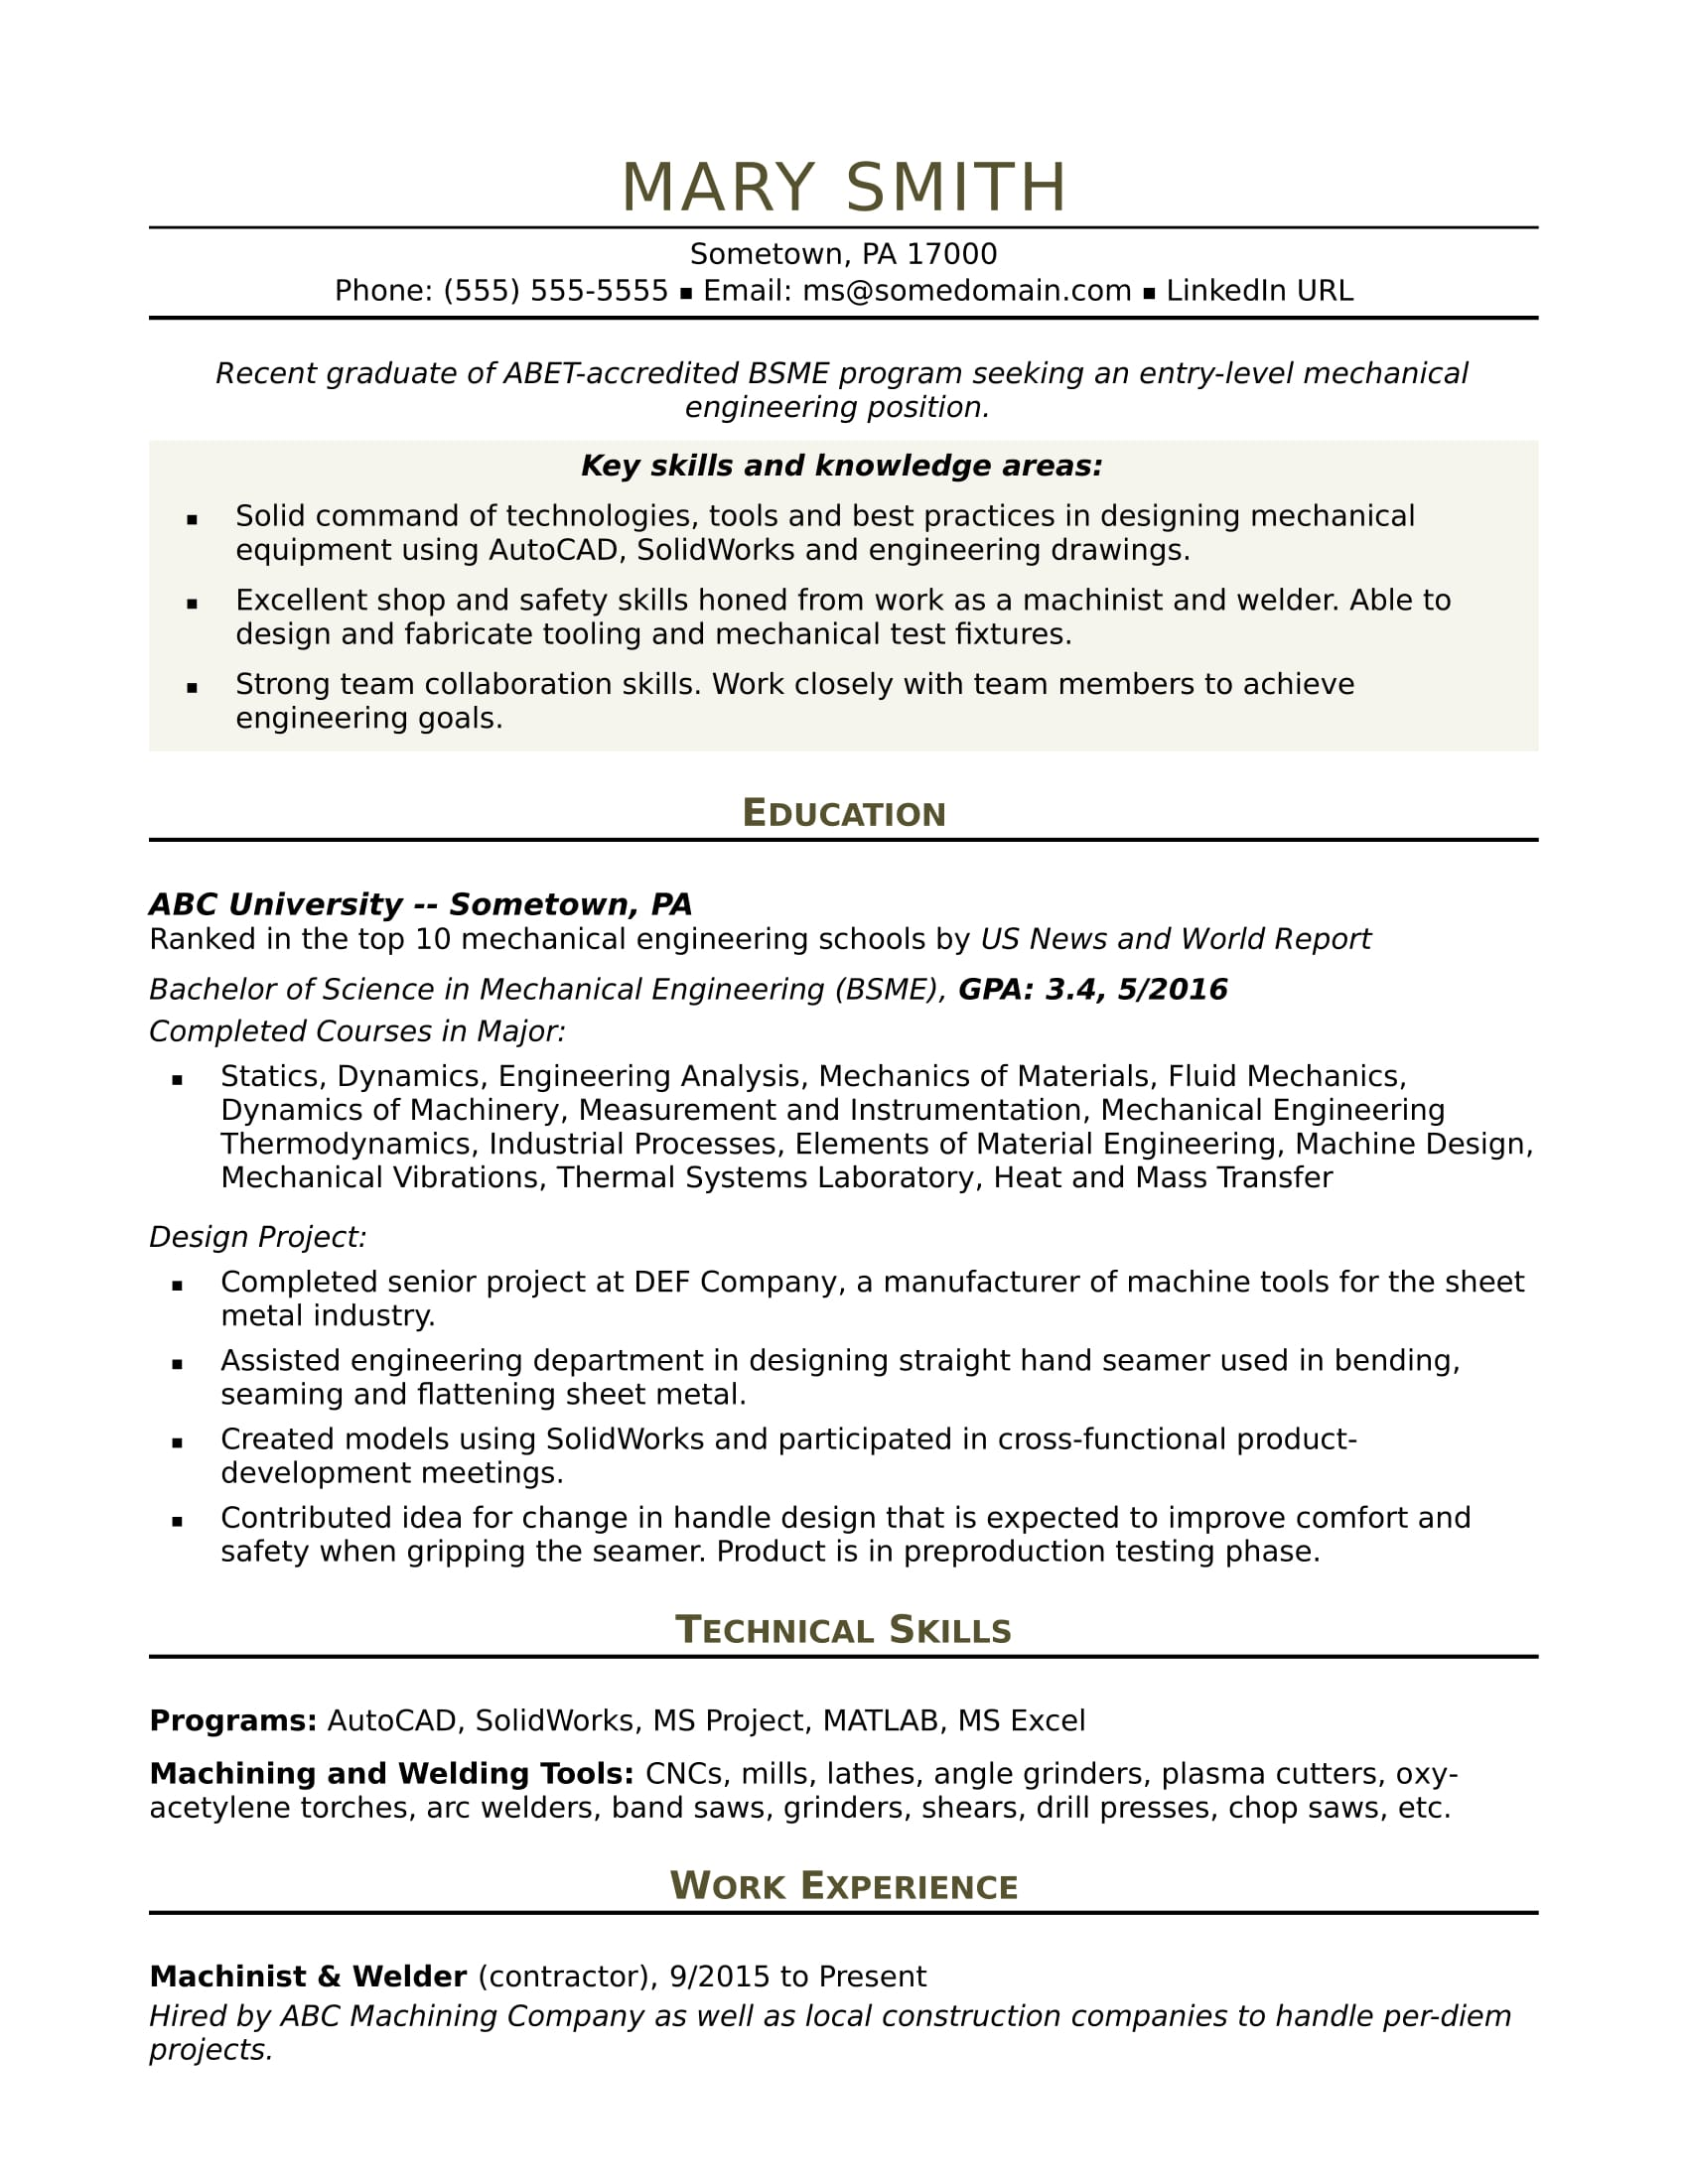 sample resume for an entry level mechanical engineer - Entry Level Mechanical Engineering Resume